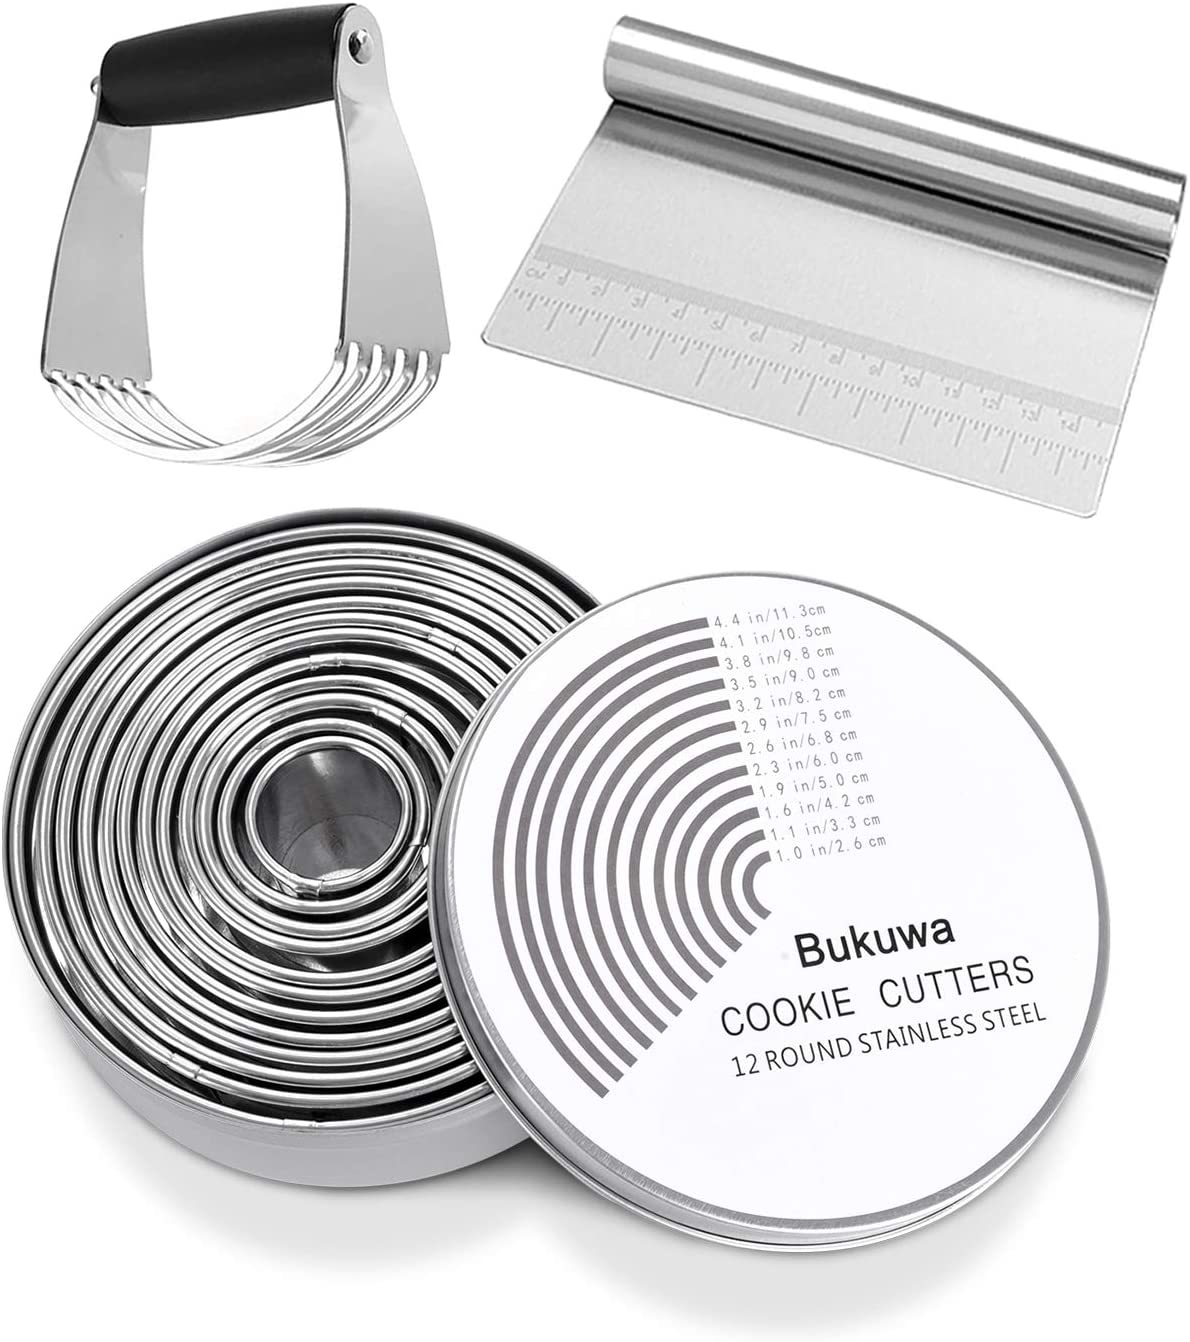 Round Cookie Biscuit Cutter,Dough Scraper,Pastry Blender Set,18/8 304 Stainless Steel Cookie Cutters And Bench Scraper,Graduated Pastry Cutter,14 Pieces Professional Baking Supplies